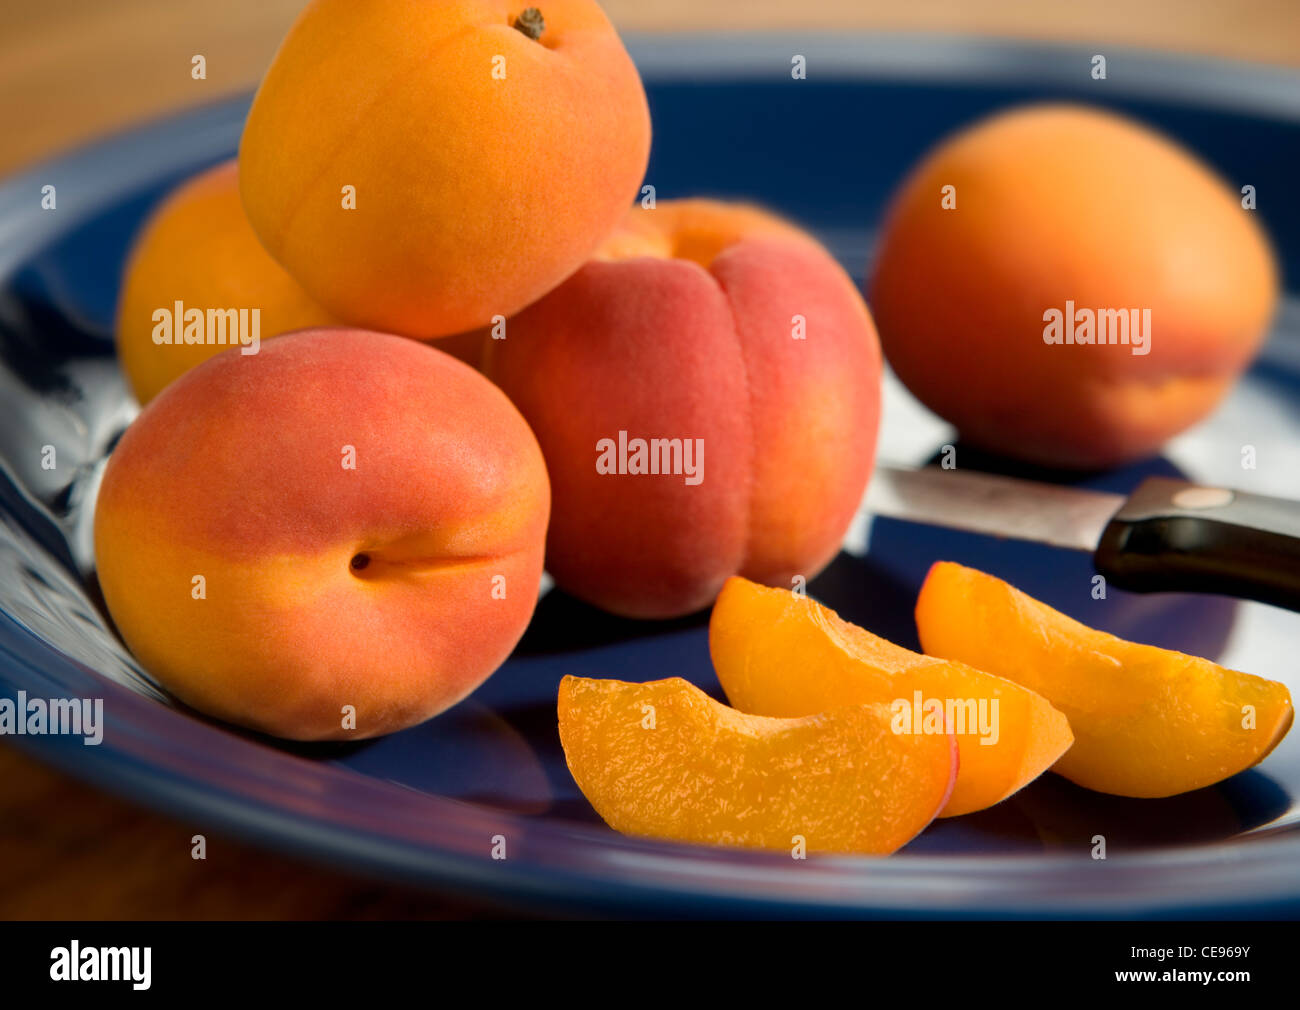 Whole and sliced apricots on a blue ceramic plate. - Stock Image